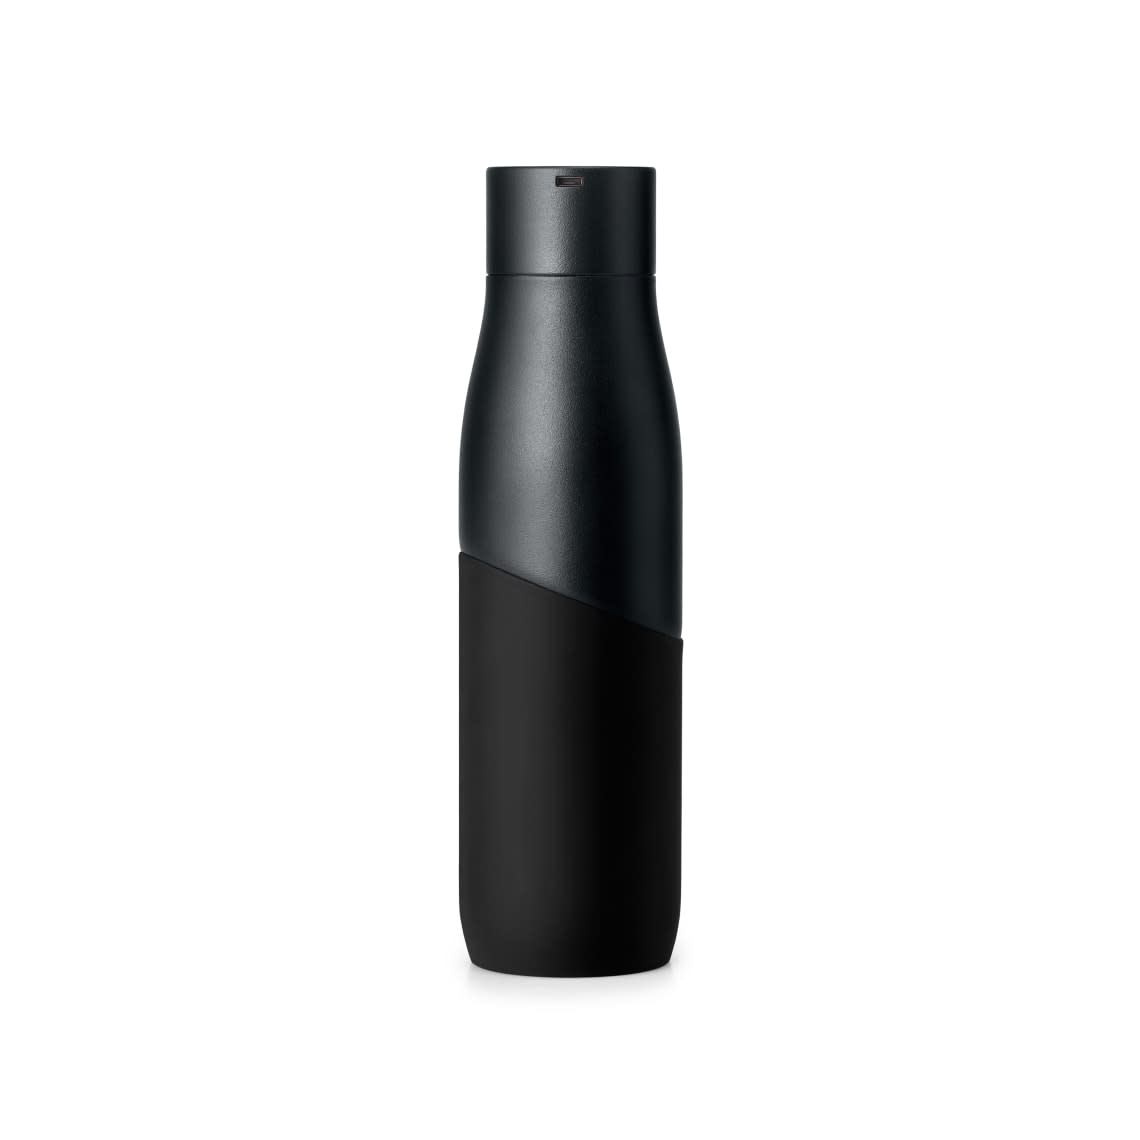 LARQ Bottle Movement PureVis - Black / Onyx